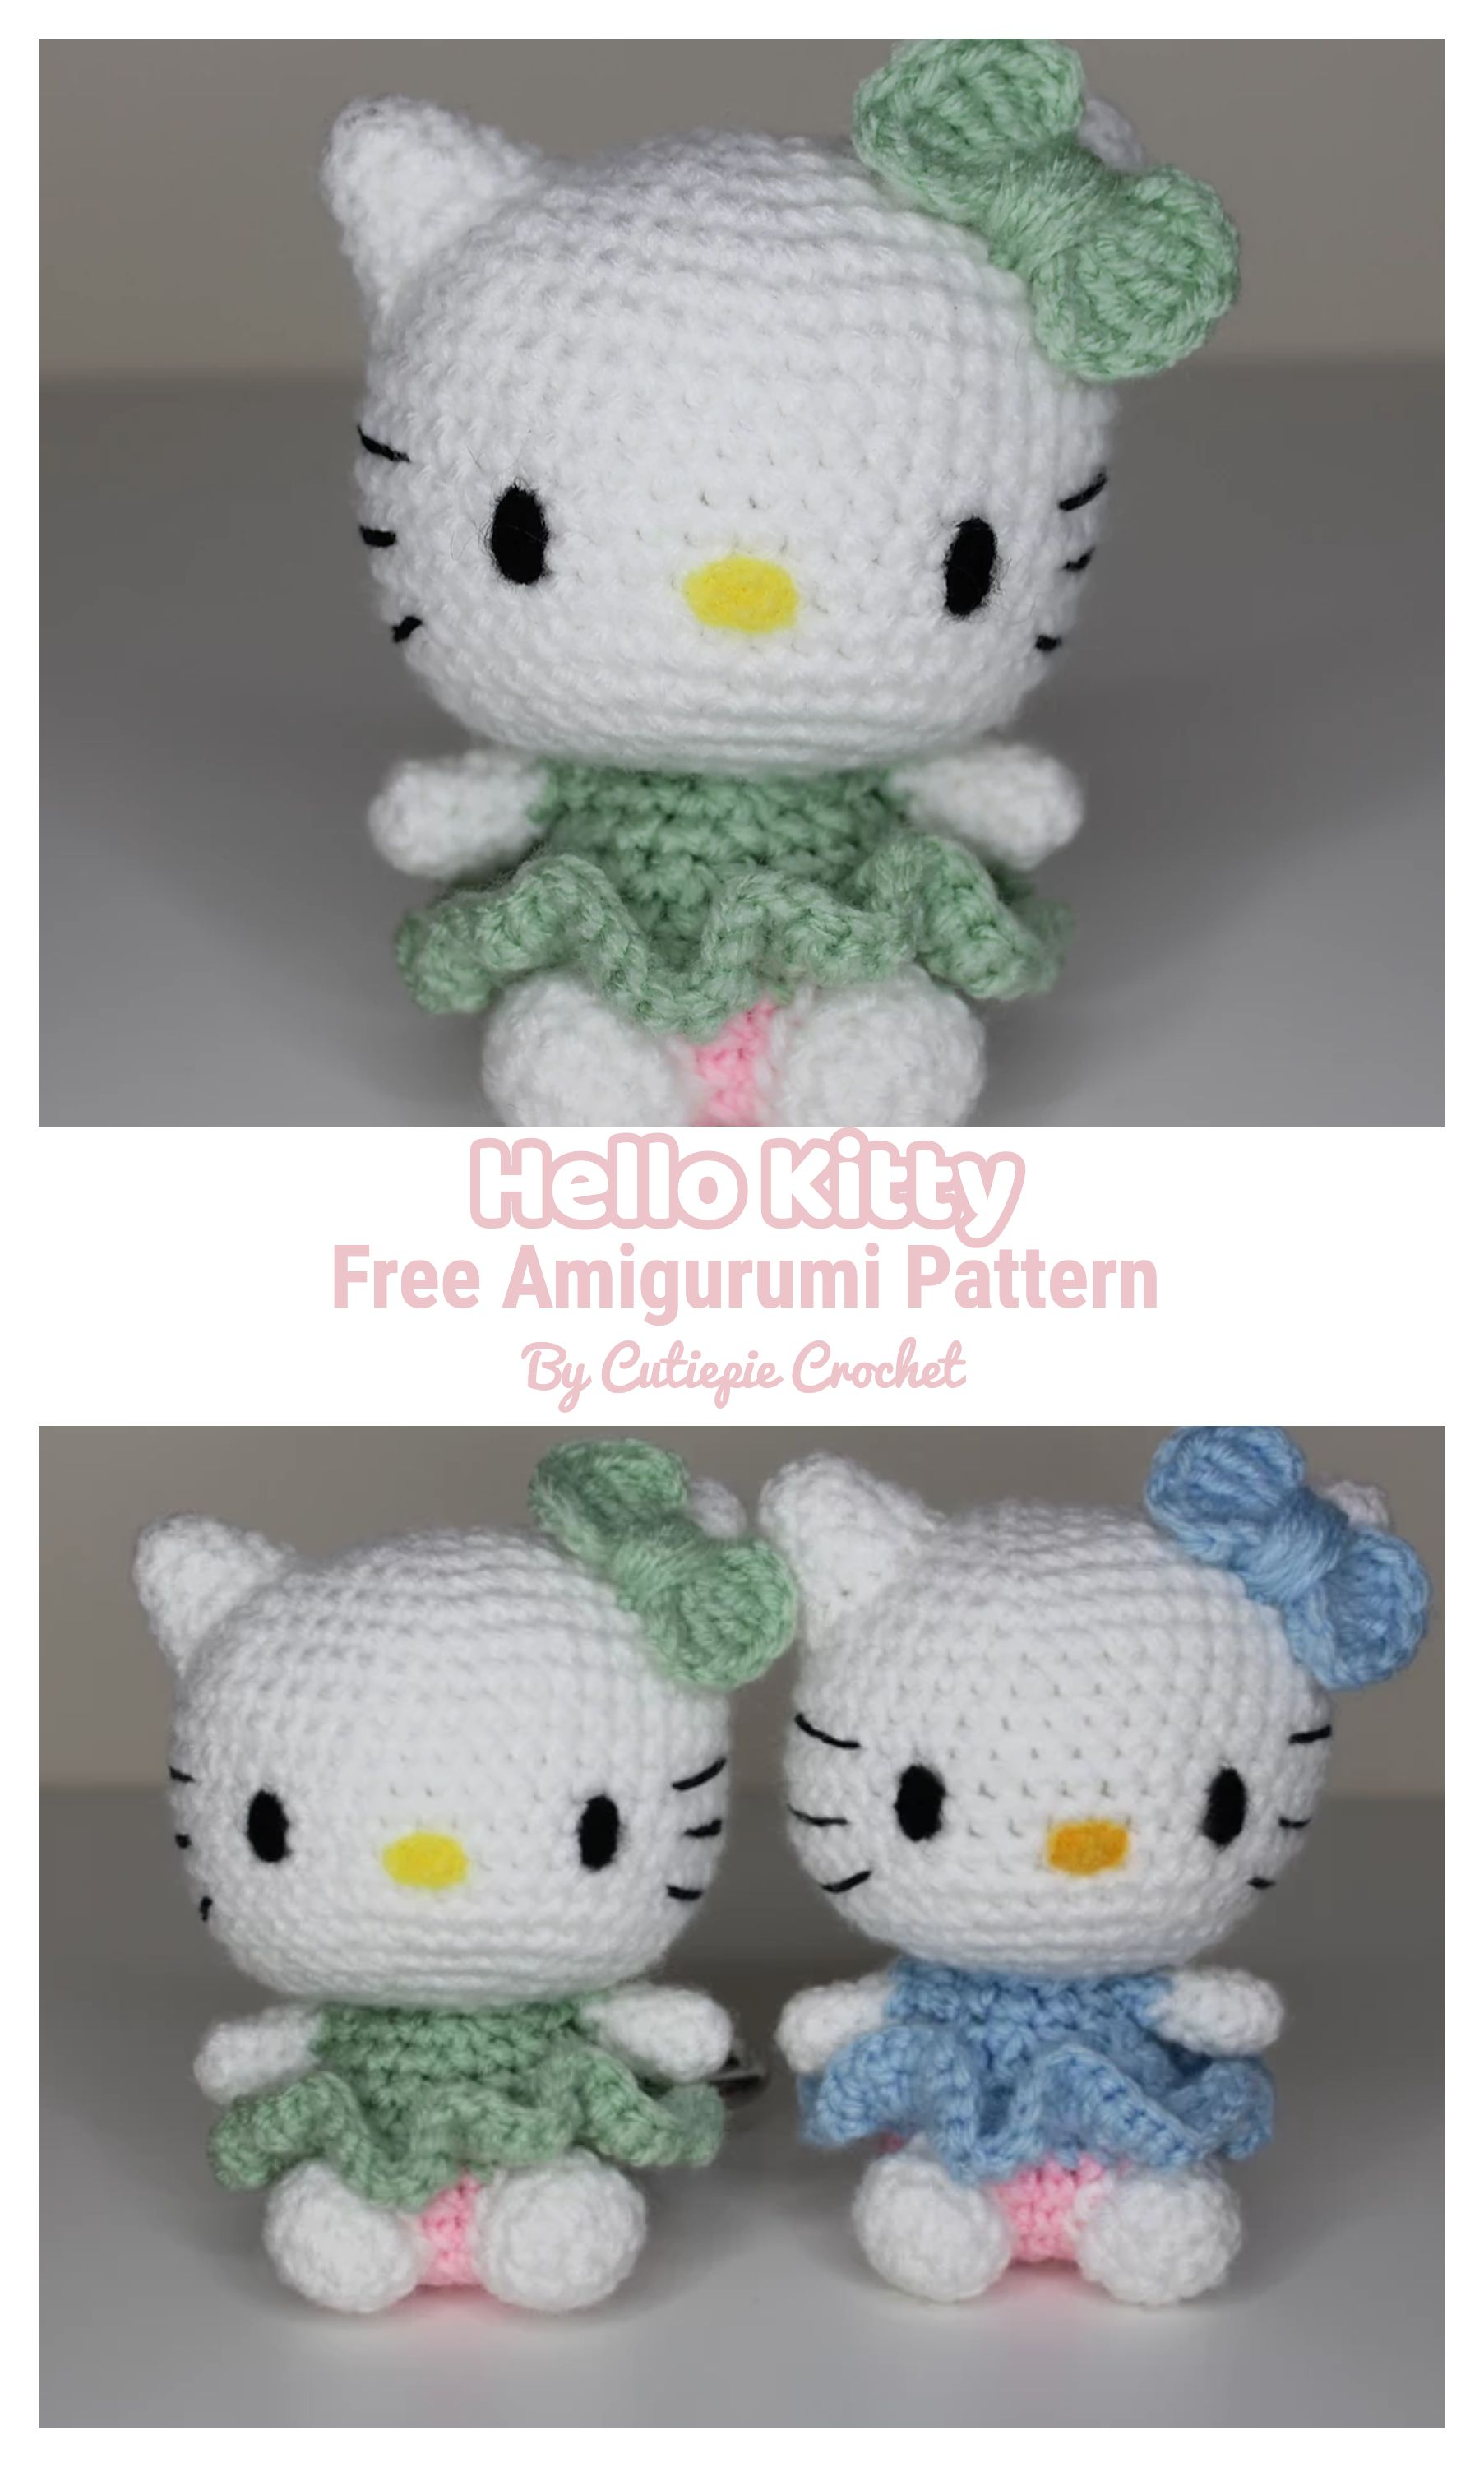 Hello Kitty Free Amigurumi Pattern in 2020 | Hello kitty